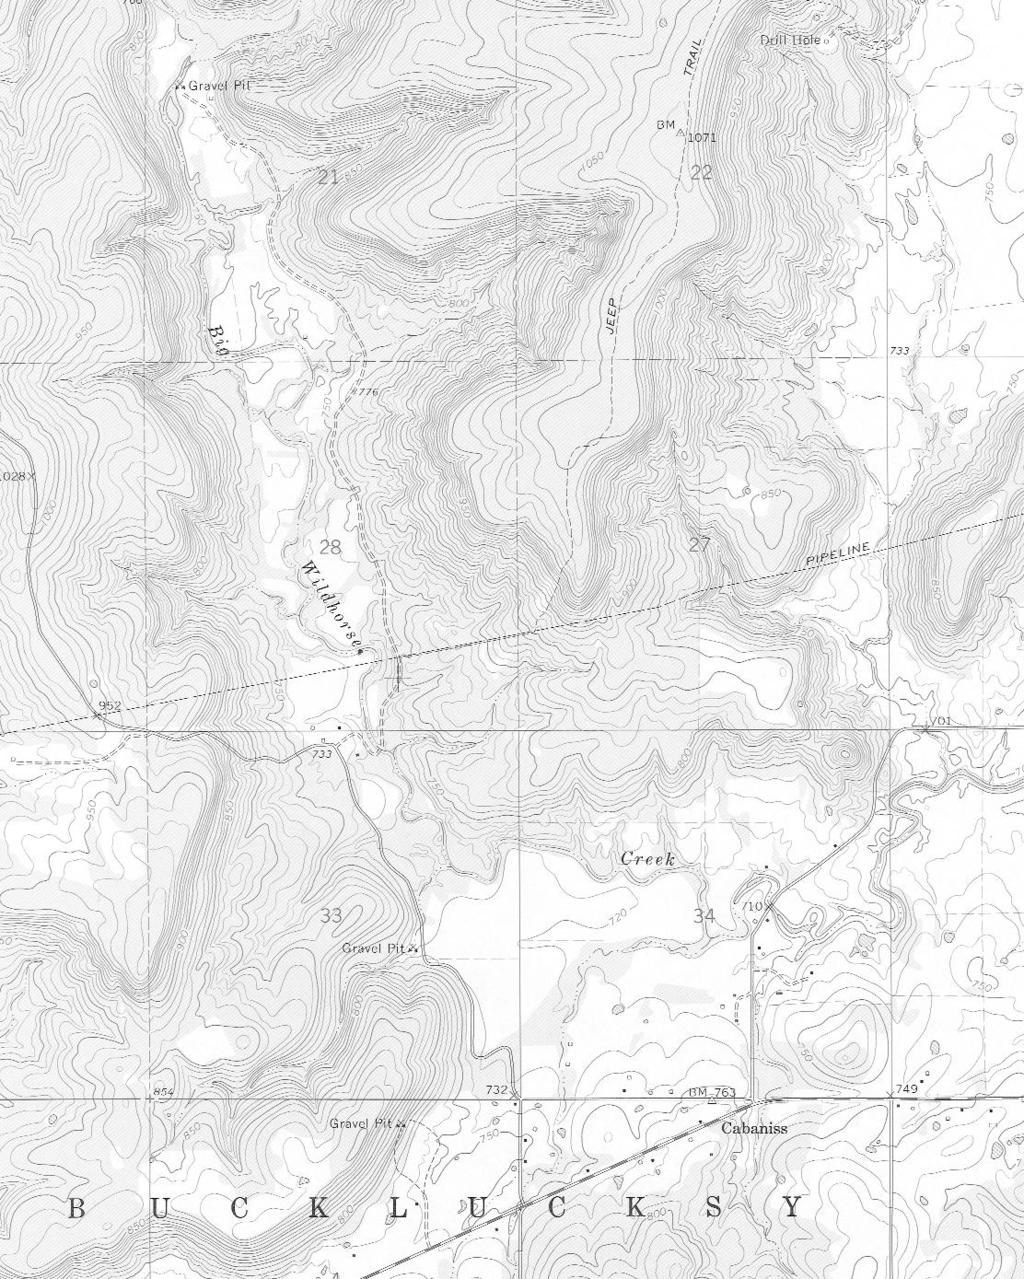 Earth Science Topographic Map Worksheet 2 Answer Key